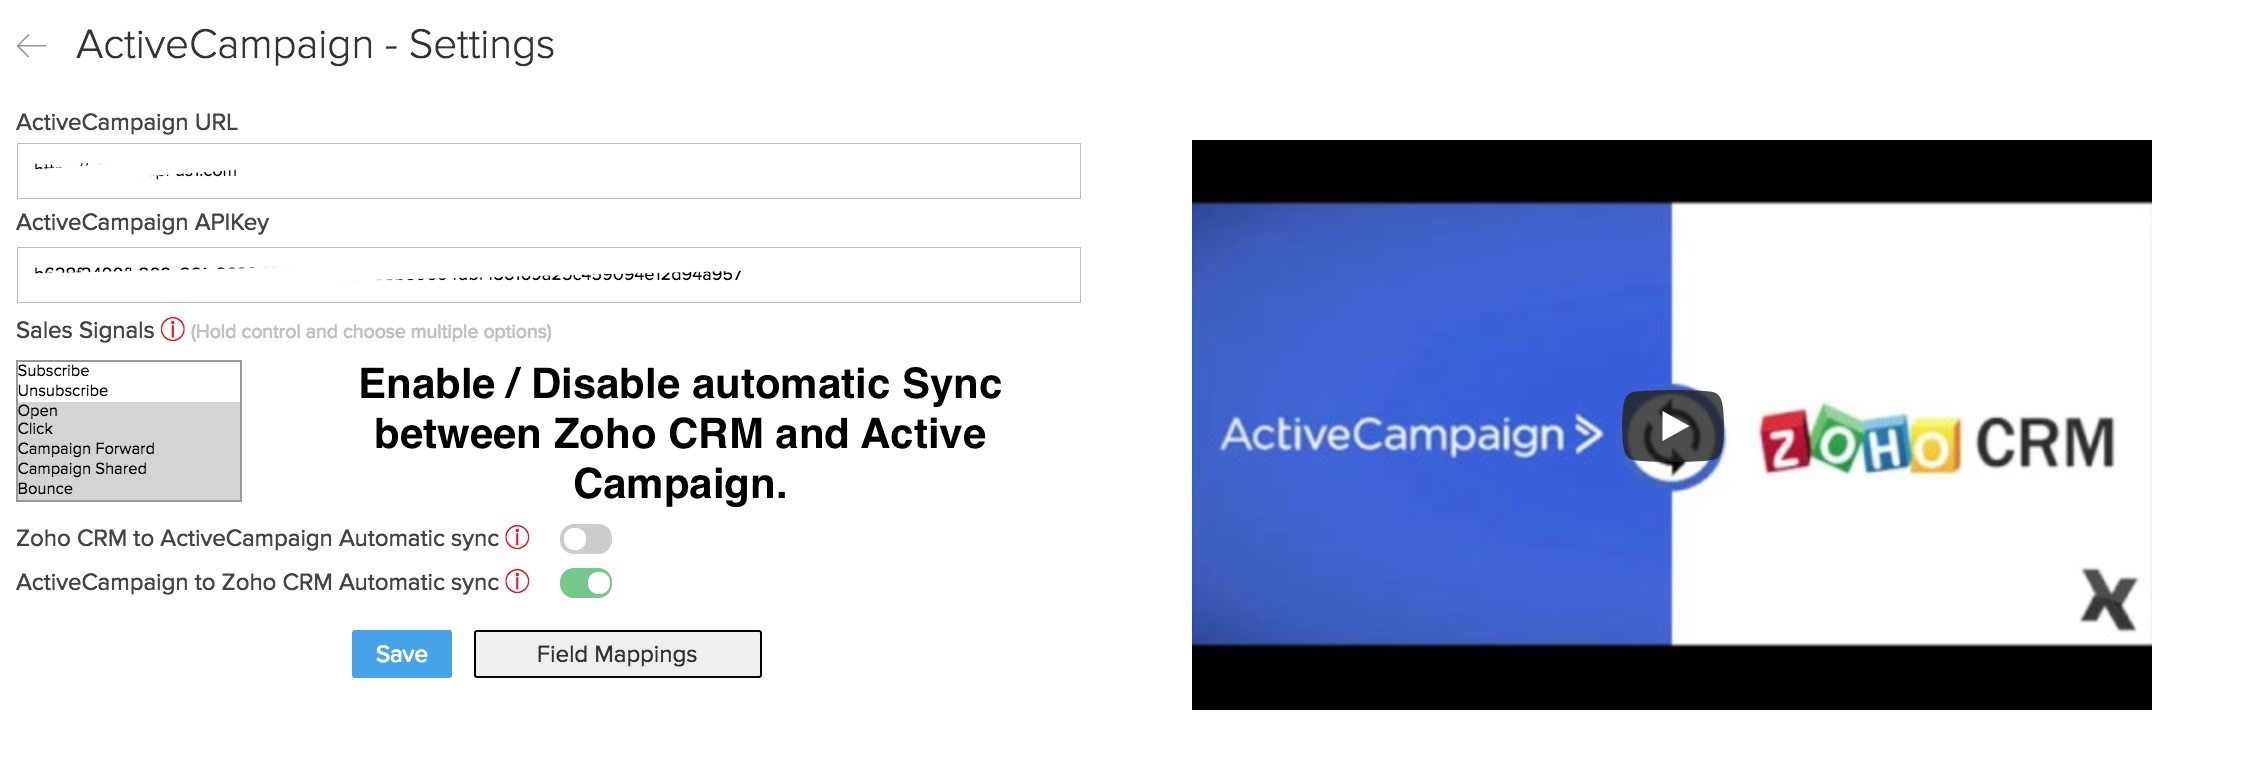 Excitement About Activecampaign Crm